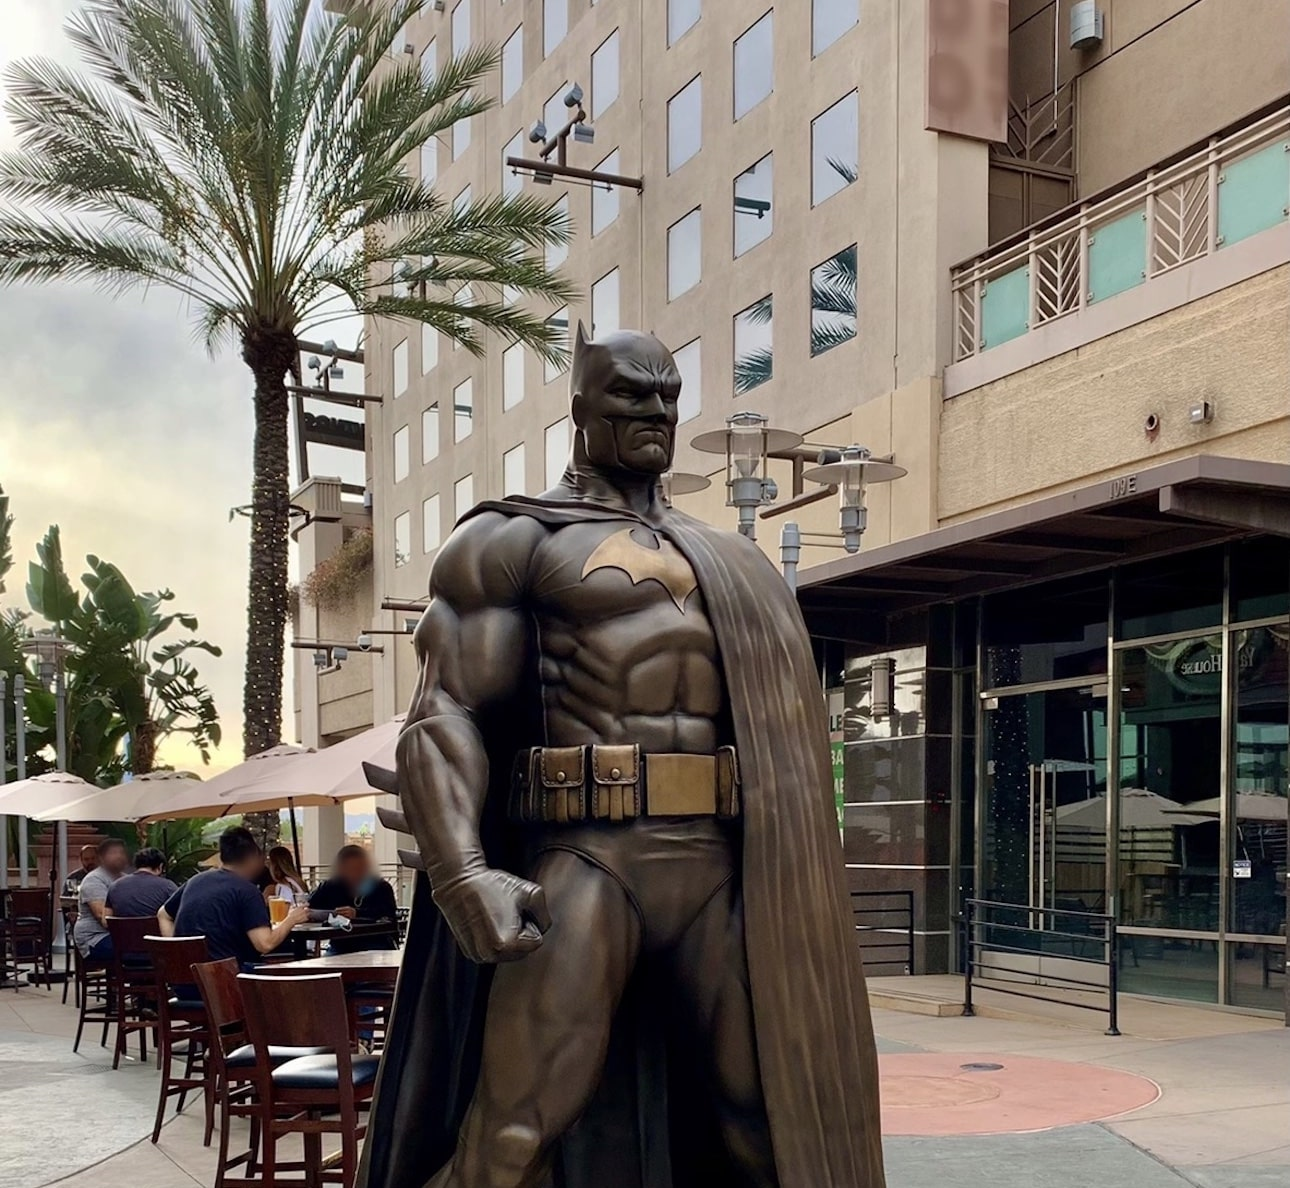 DC Comics and Burbank city team up for 600-pound bronze Batman statue